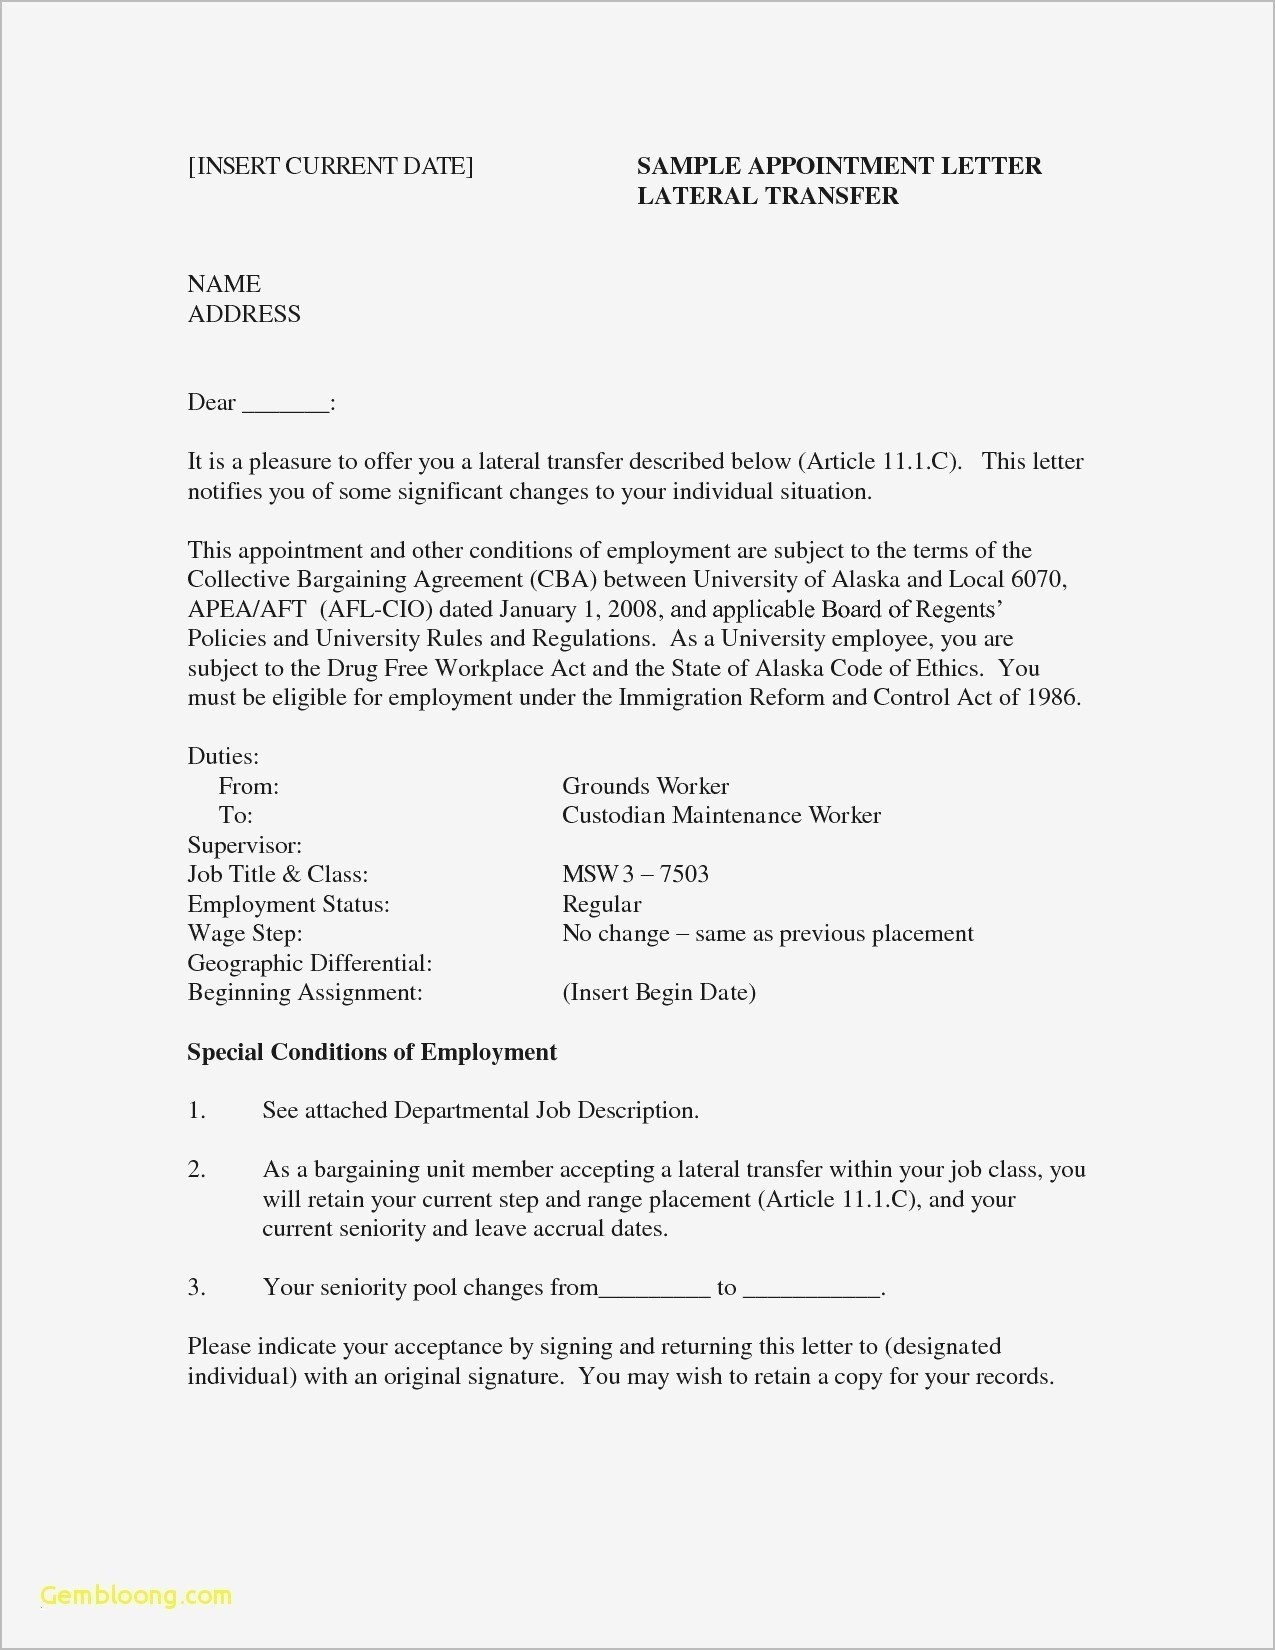 Technical theater Resume Template - Music Resume Template Unique Template for Resume Best College Resume